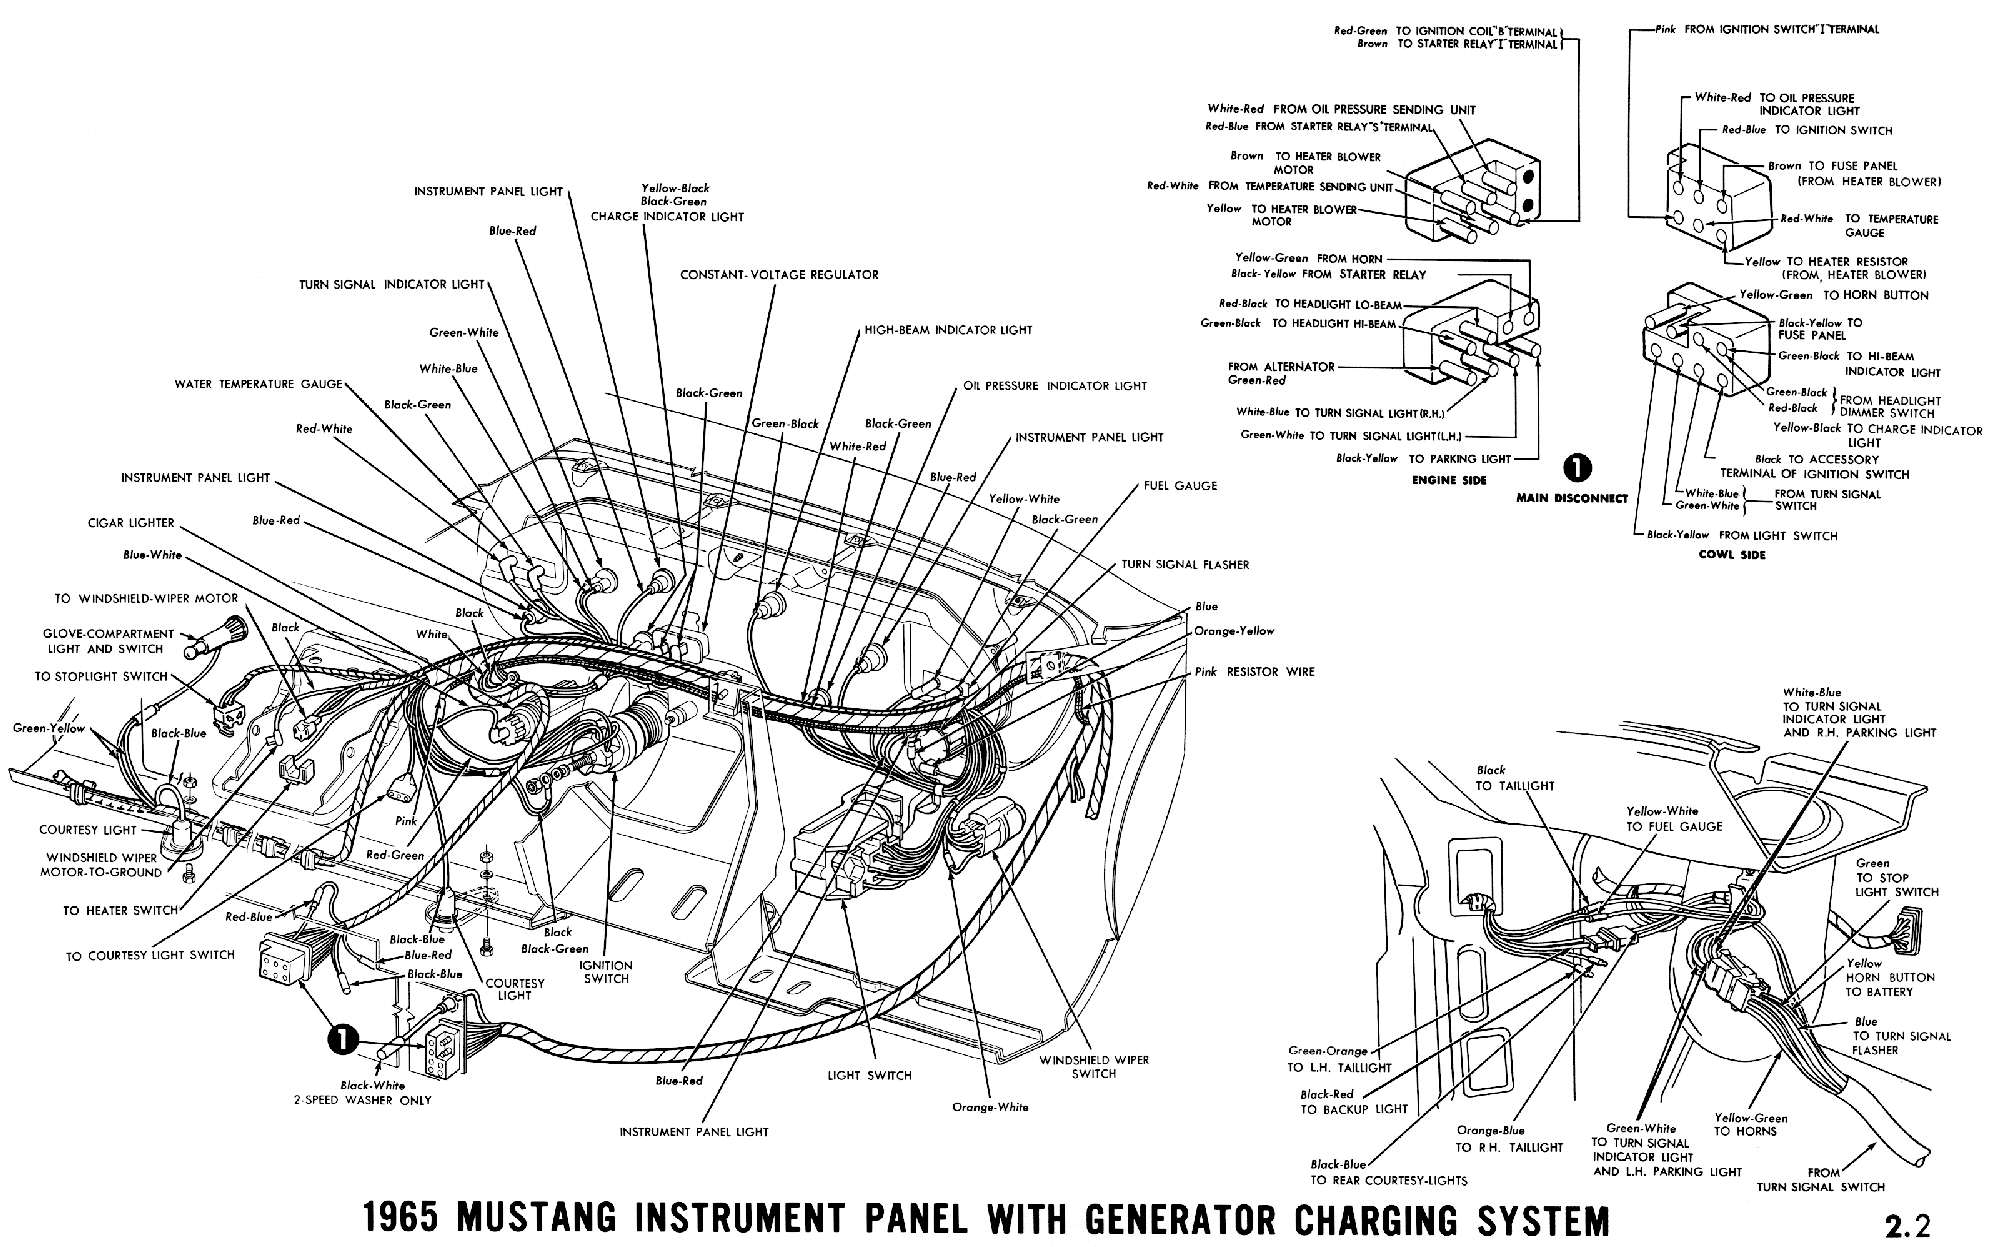 √ 70 Mustang Engine Wiring Diagram  Mustang Engine Wiring Diagram on 92 mustang vacuum diagram, 70 mustang dash wiring, 70 mustang body, 70 mustang fuel system, 70 mustang exhaust, 70 mustang lights, 70 mustang mach 1, cruise control diagram, 70 ford mustang electrical diagram, 70 mustang vinyl top, 70 mustang boss 302, 70 mustang neutral safety switch, 70 mustang suspension, 70 mustang coupe, 70 mustang fastback, 70 mustang parts, 1969 mustang ignition switch diagram, 70 mustang boss 429, 70 mustang headlights, 70 mustang ignition switch,